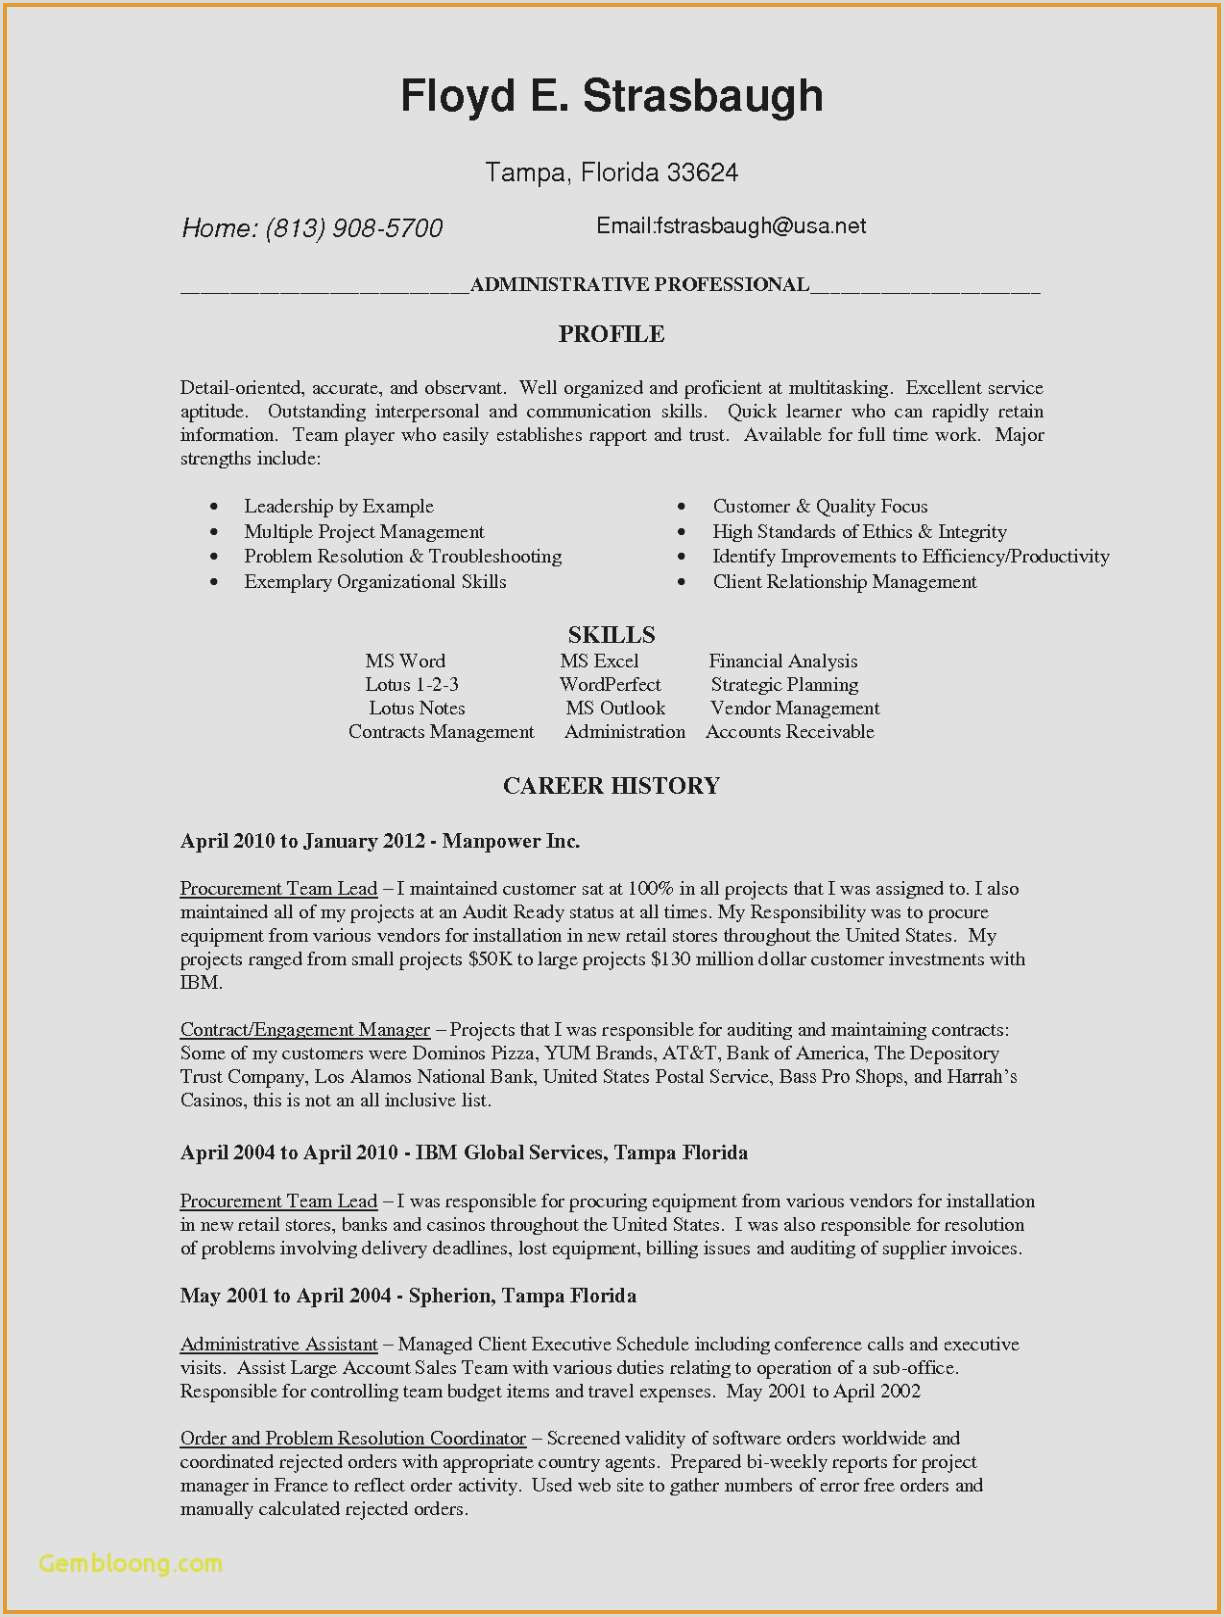 Sales Cover Letter Sample Luxury Amazing Cover Letters — Kenbachor Kenbachor